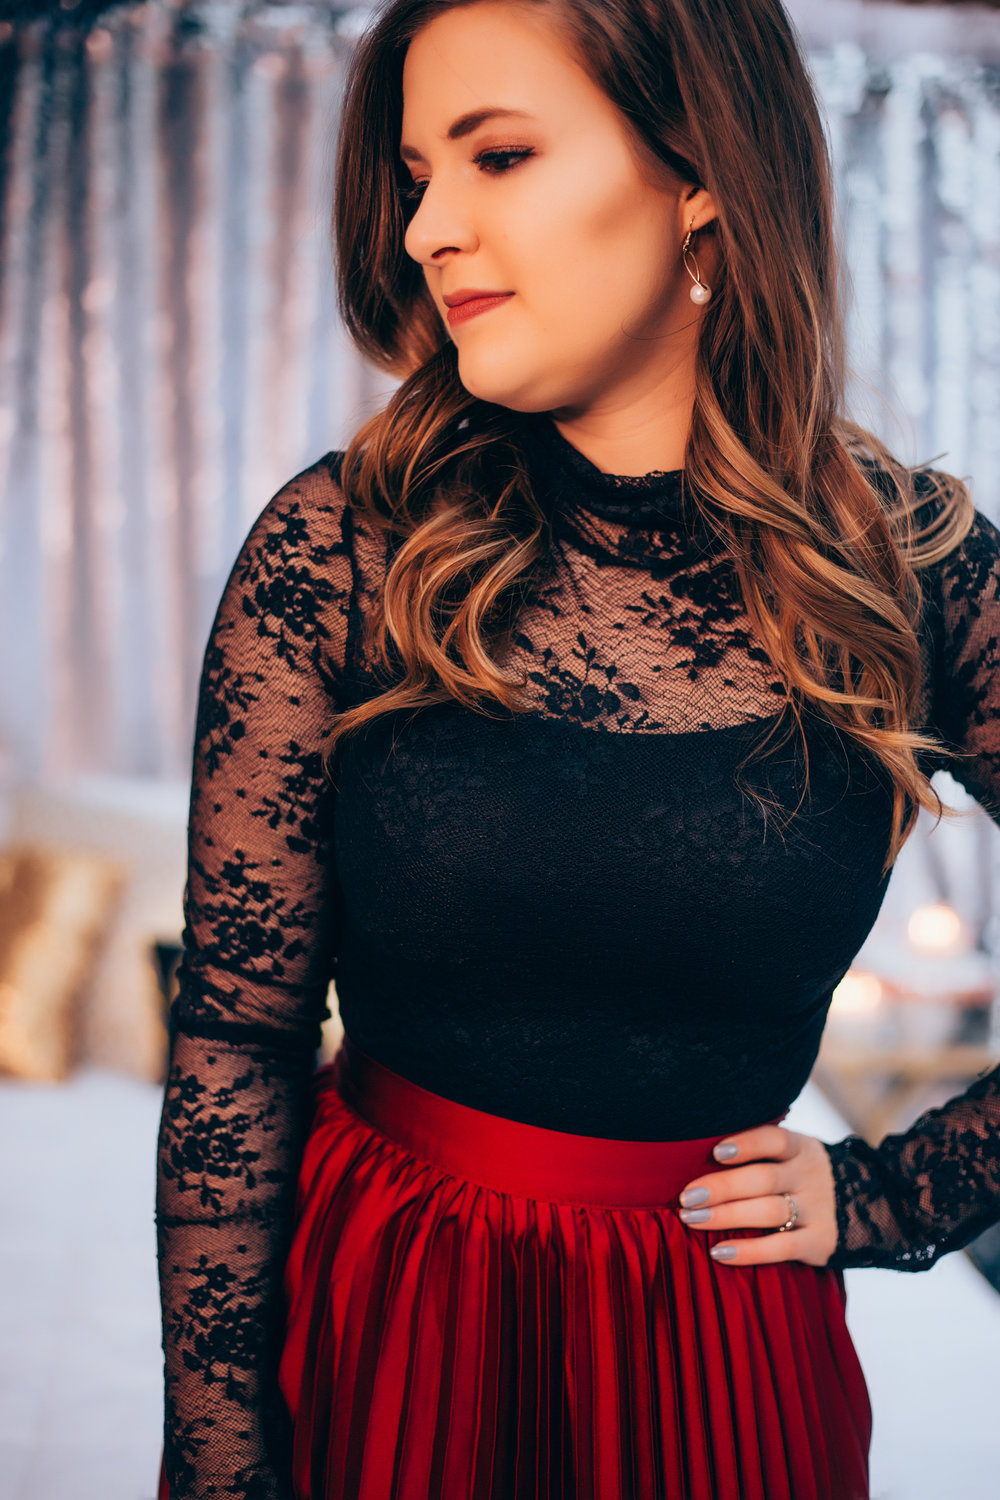 Black friday sale haul from shein holiday style fashion Christmas outfit ideas-14.jpg